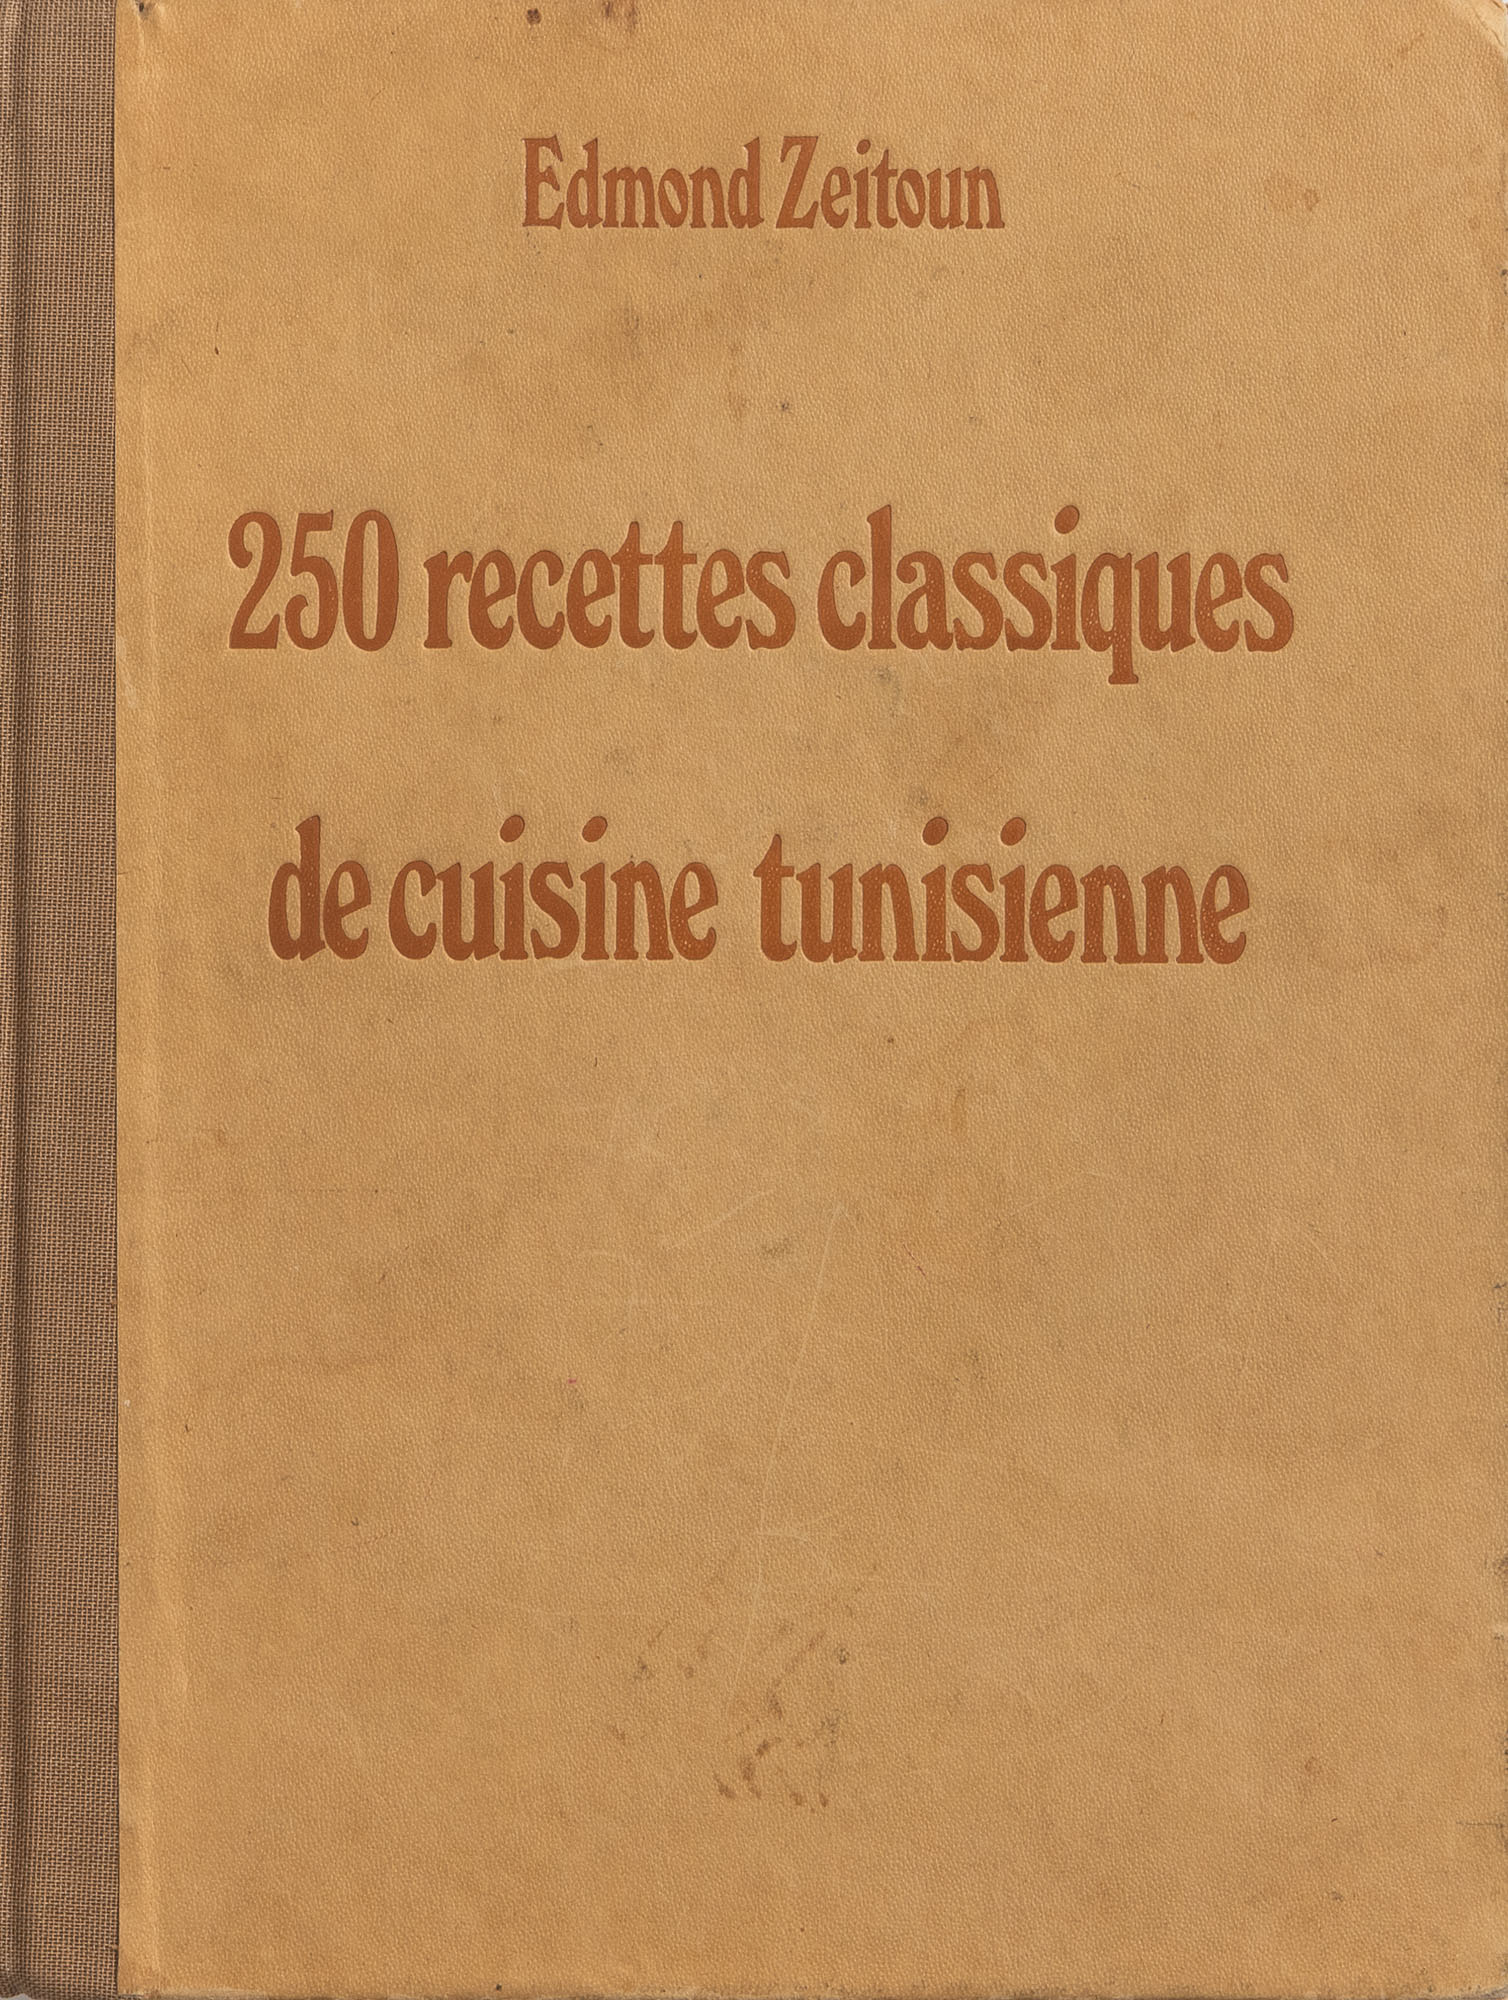 The cover of the French-language Tunisian cookbook Recettes Classiques de Cuisine Tunisienne